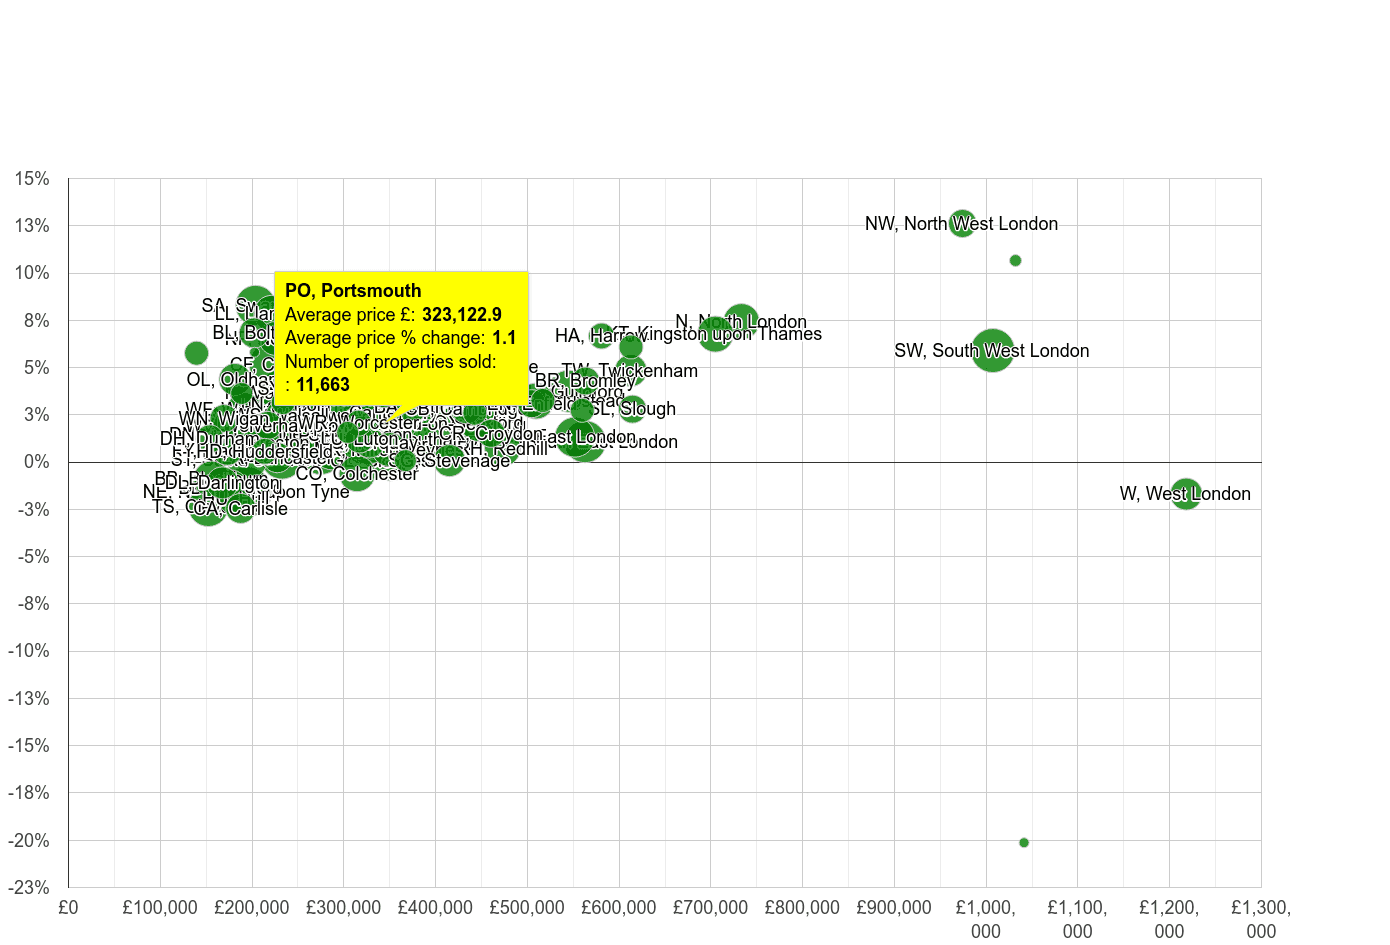 Portsmouth house prices compared to other areas